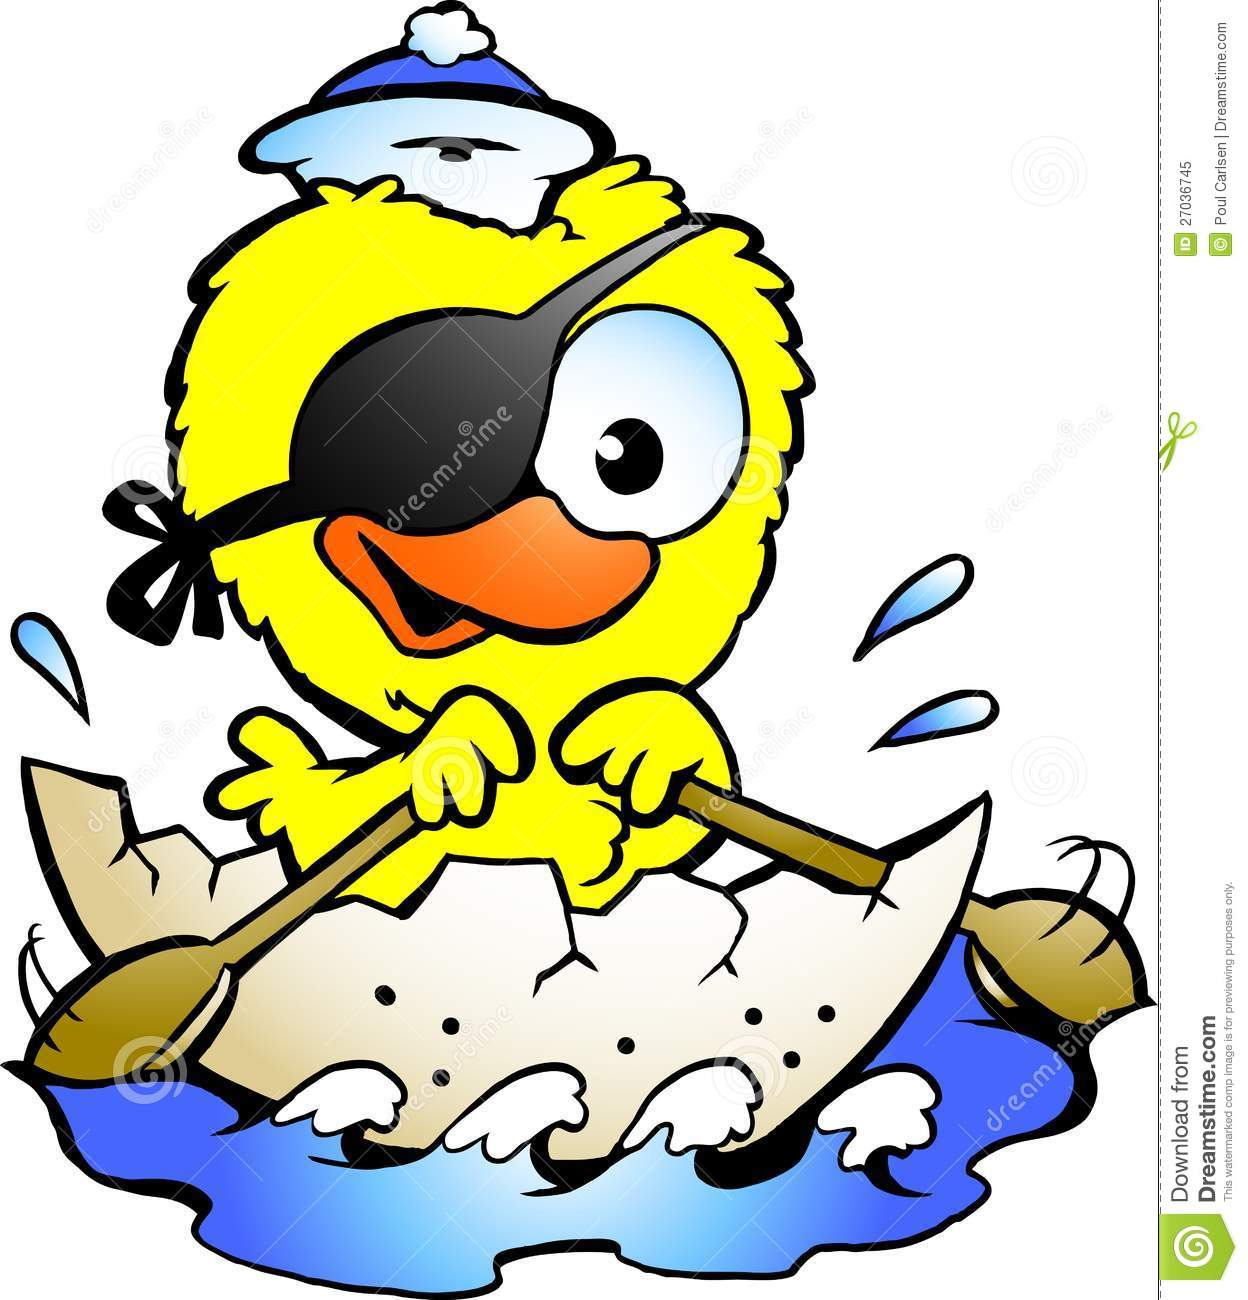 Hand-drawn Vector illustration of an cute baby chicken rowing a boat.